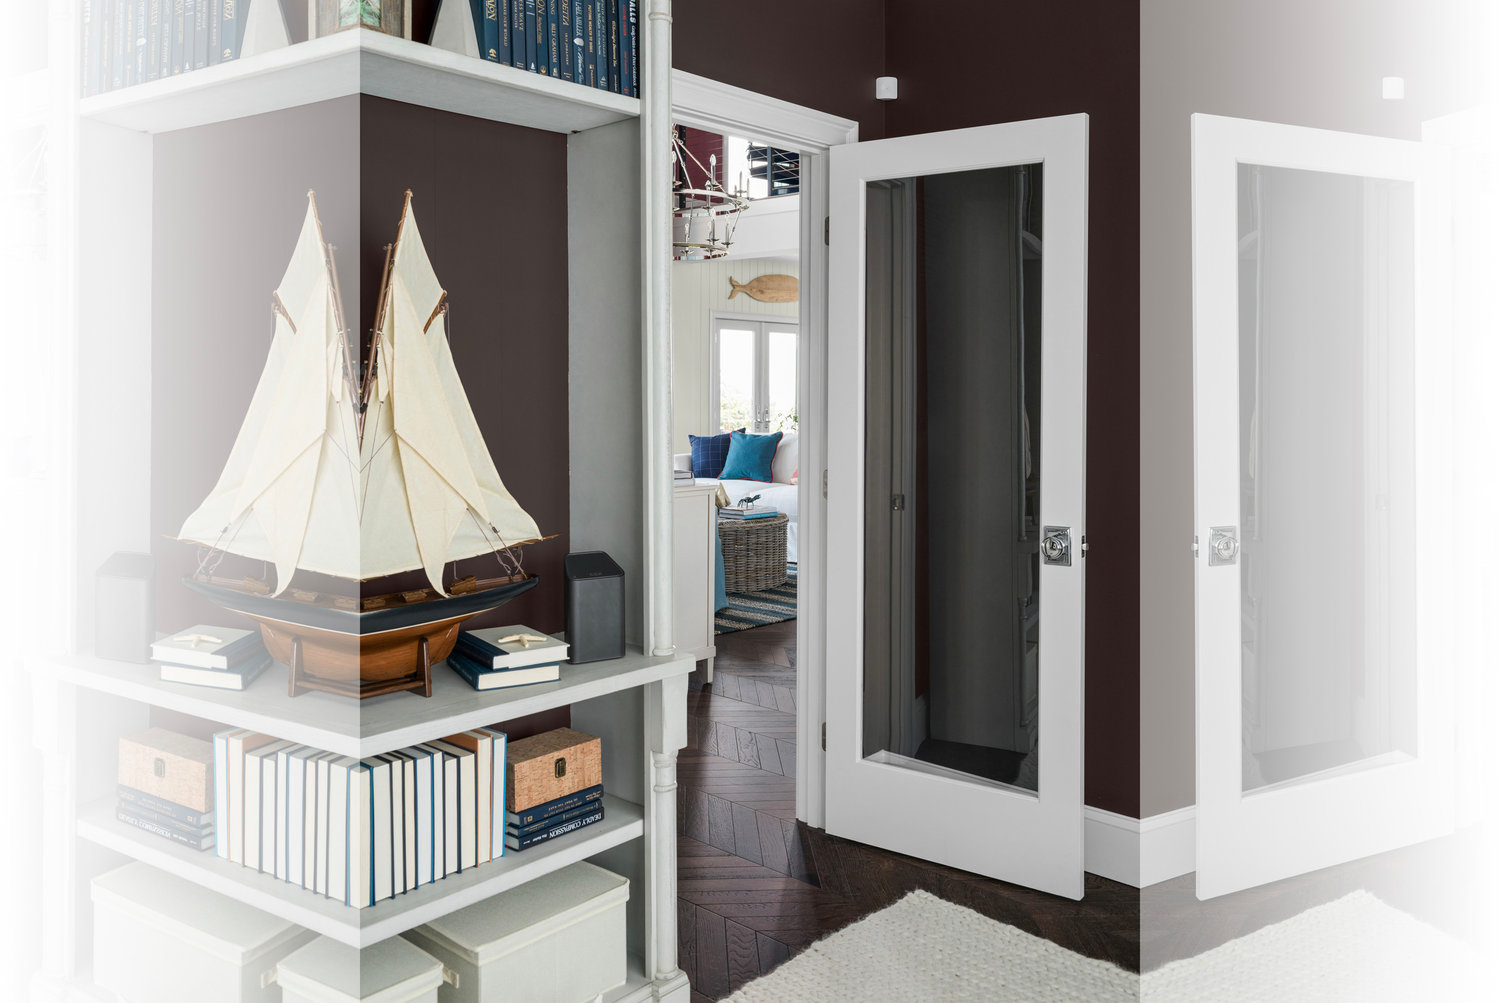 Designer Brian Patrick Flynn chose a glass door to minimize intrusions during remote work or learning in the library